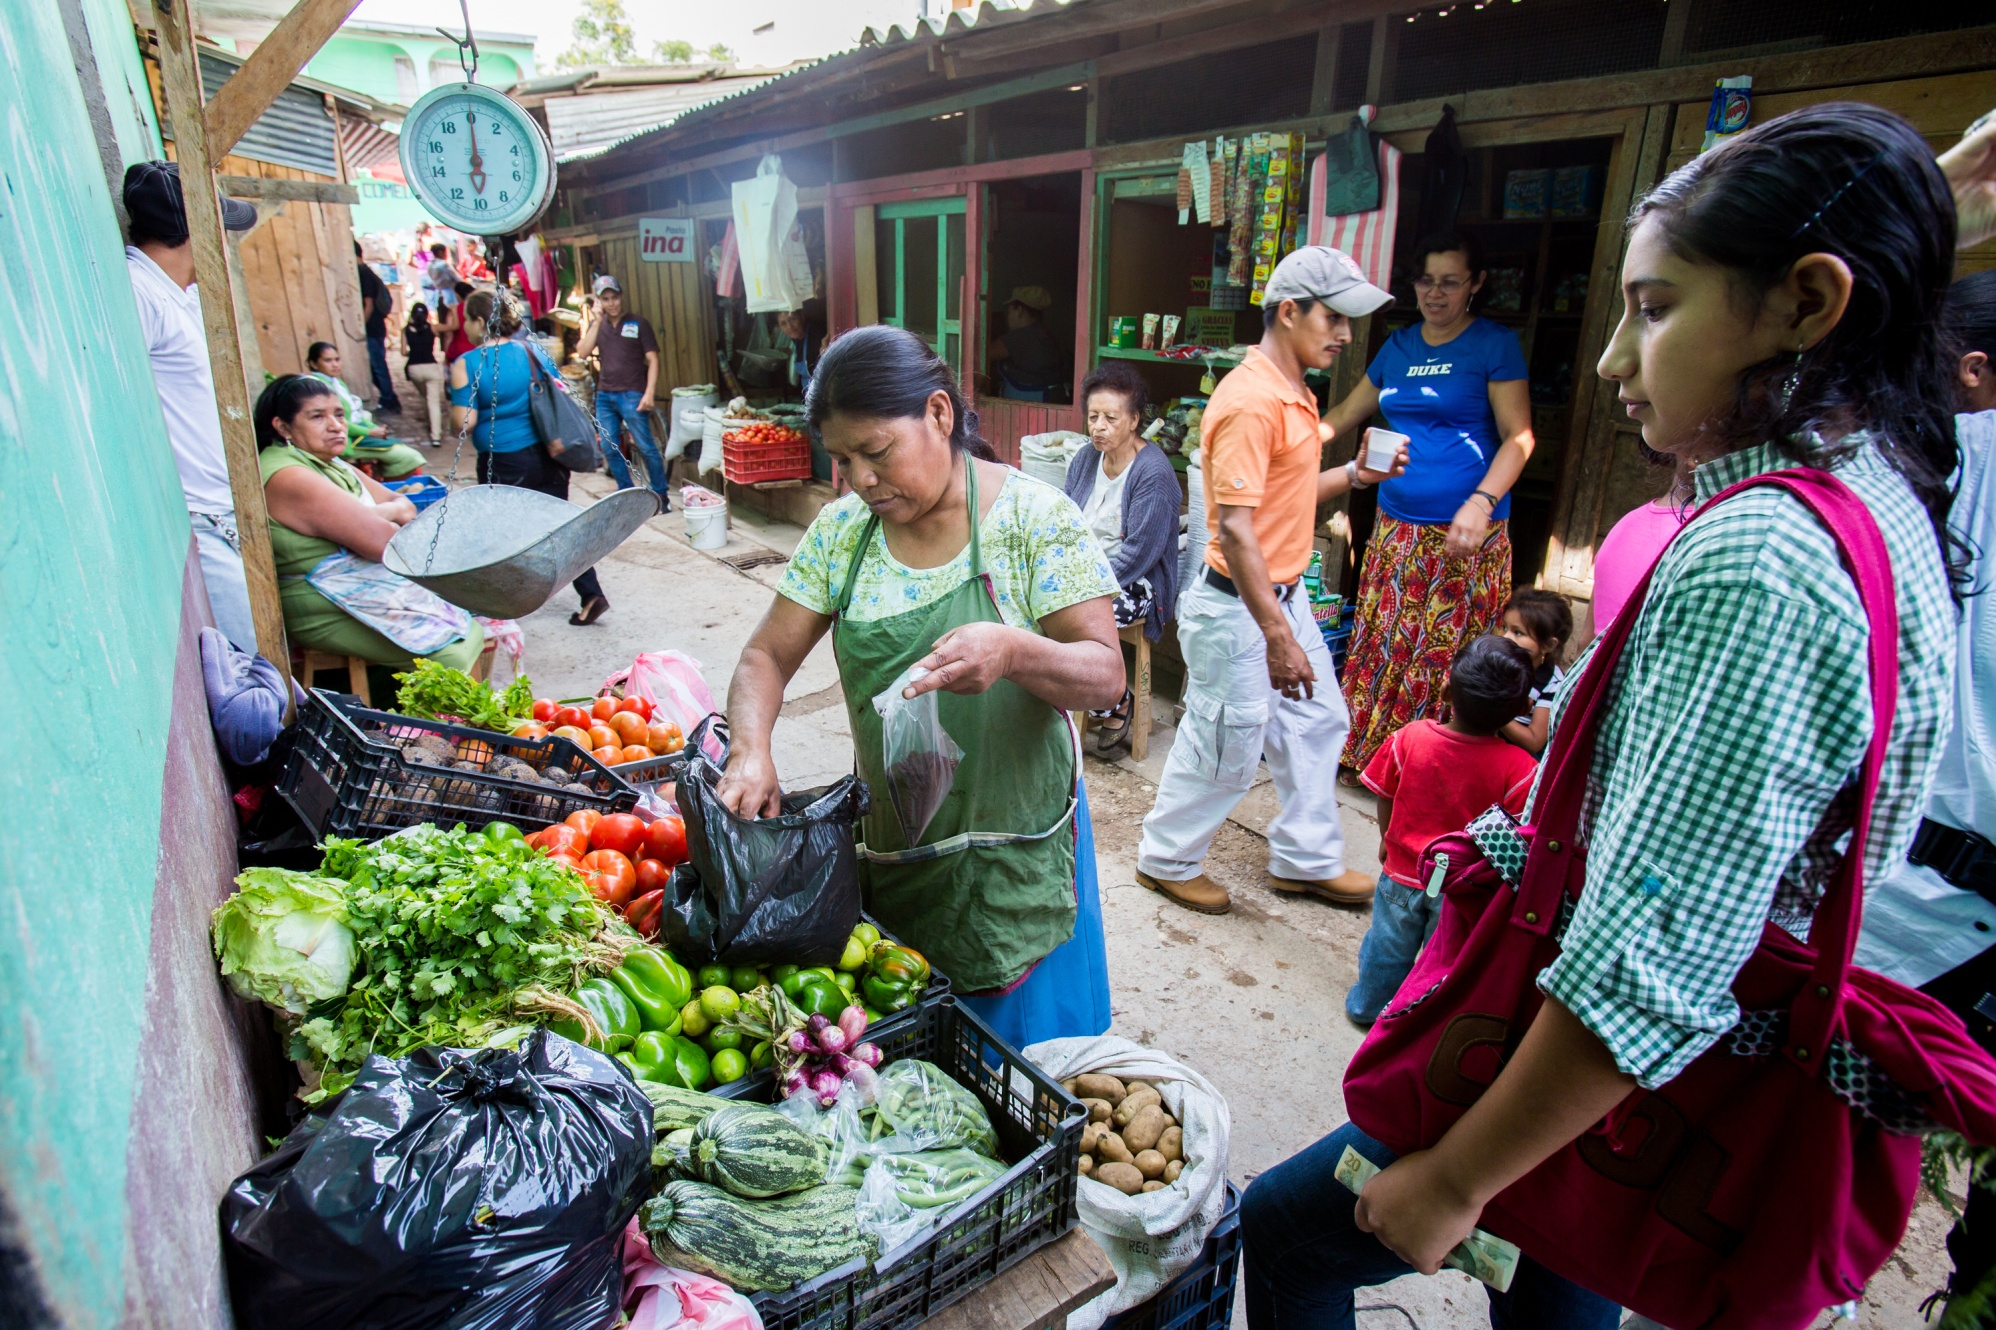 Adelante Foundation microcredit client Dona Ninfa (center) sells vegetables at the market in La Esperanza, Honduras. The Adelante Foundation's microcredit program, which offers women loans and business training aimed at increasing their household incomes.